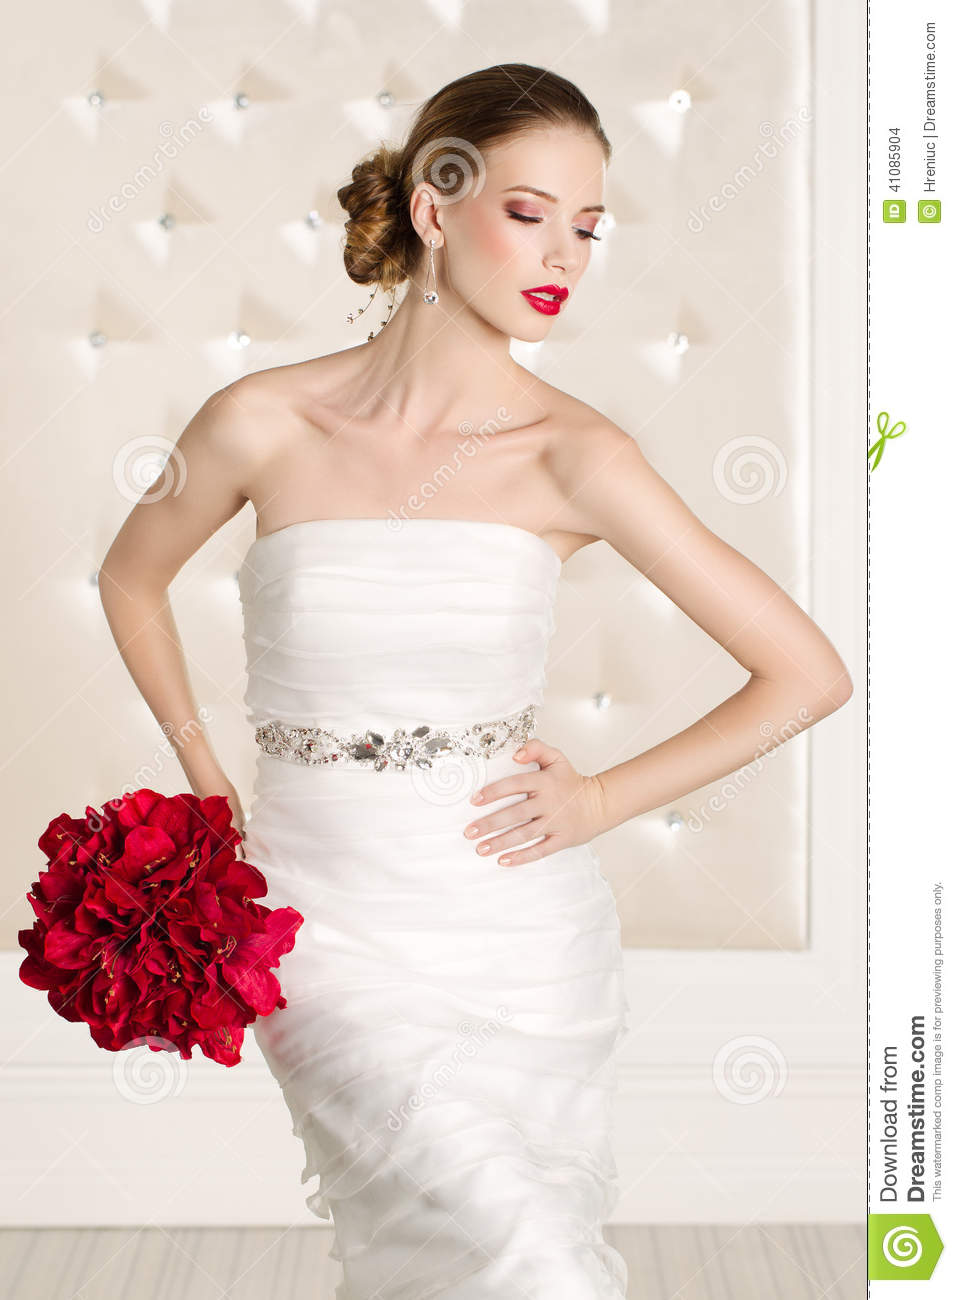 Gorgeous Bride With White Dress With Red Flowers Bouquet Stock Photo